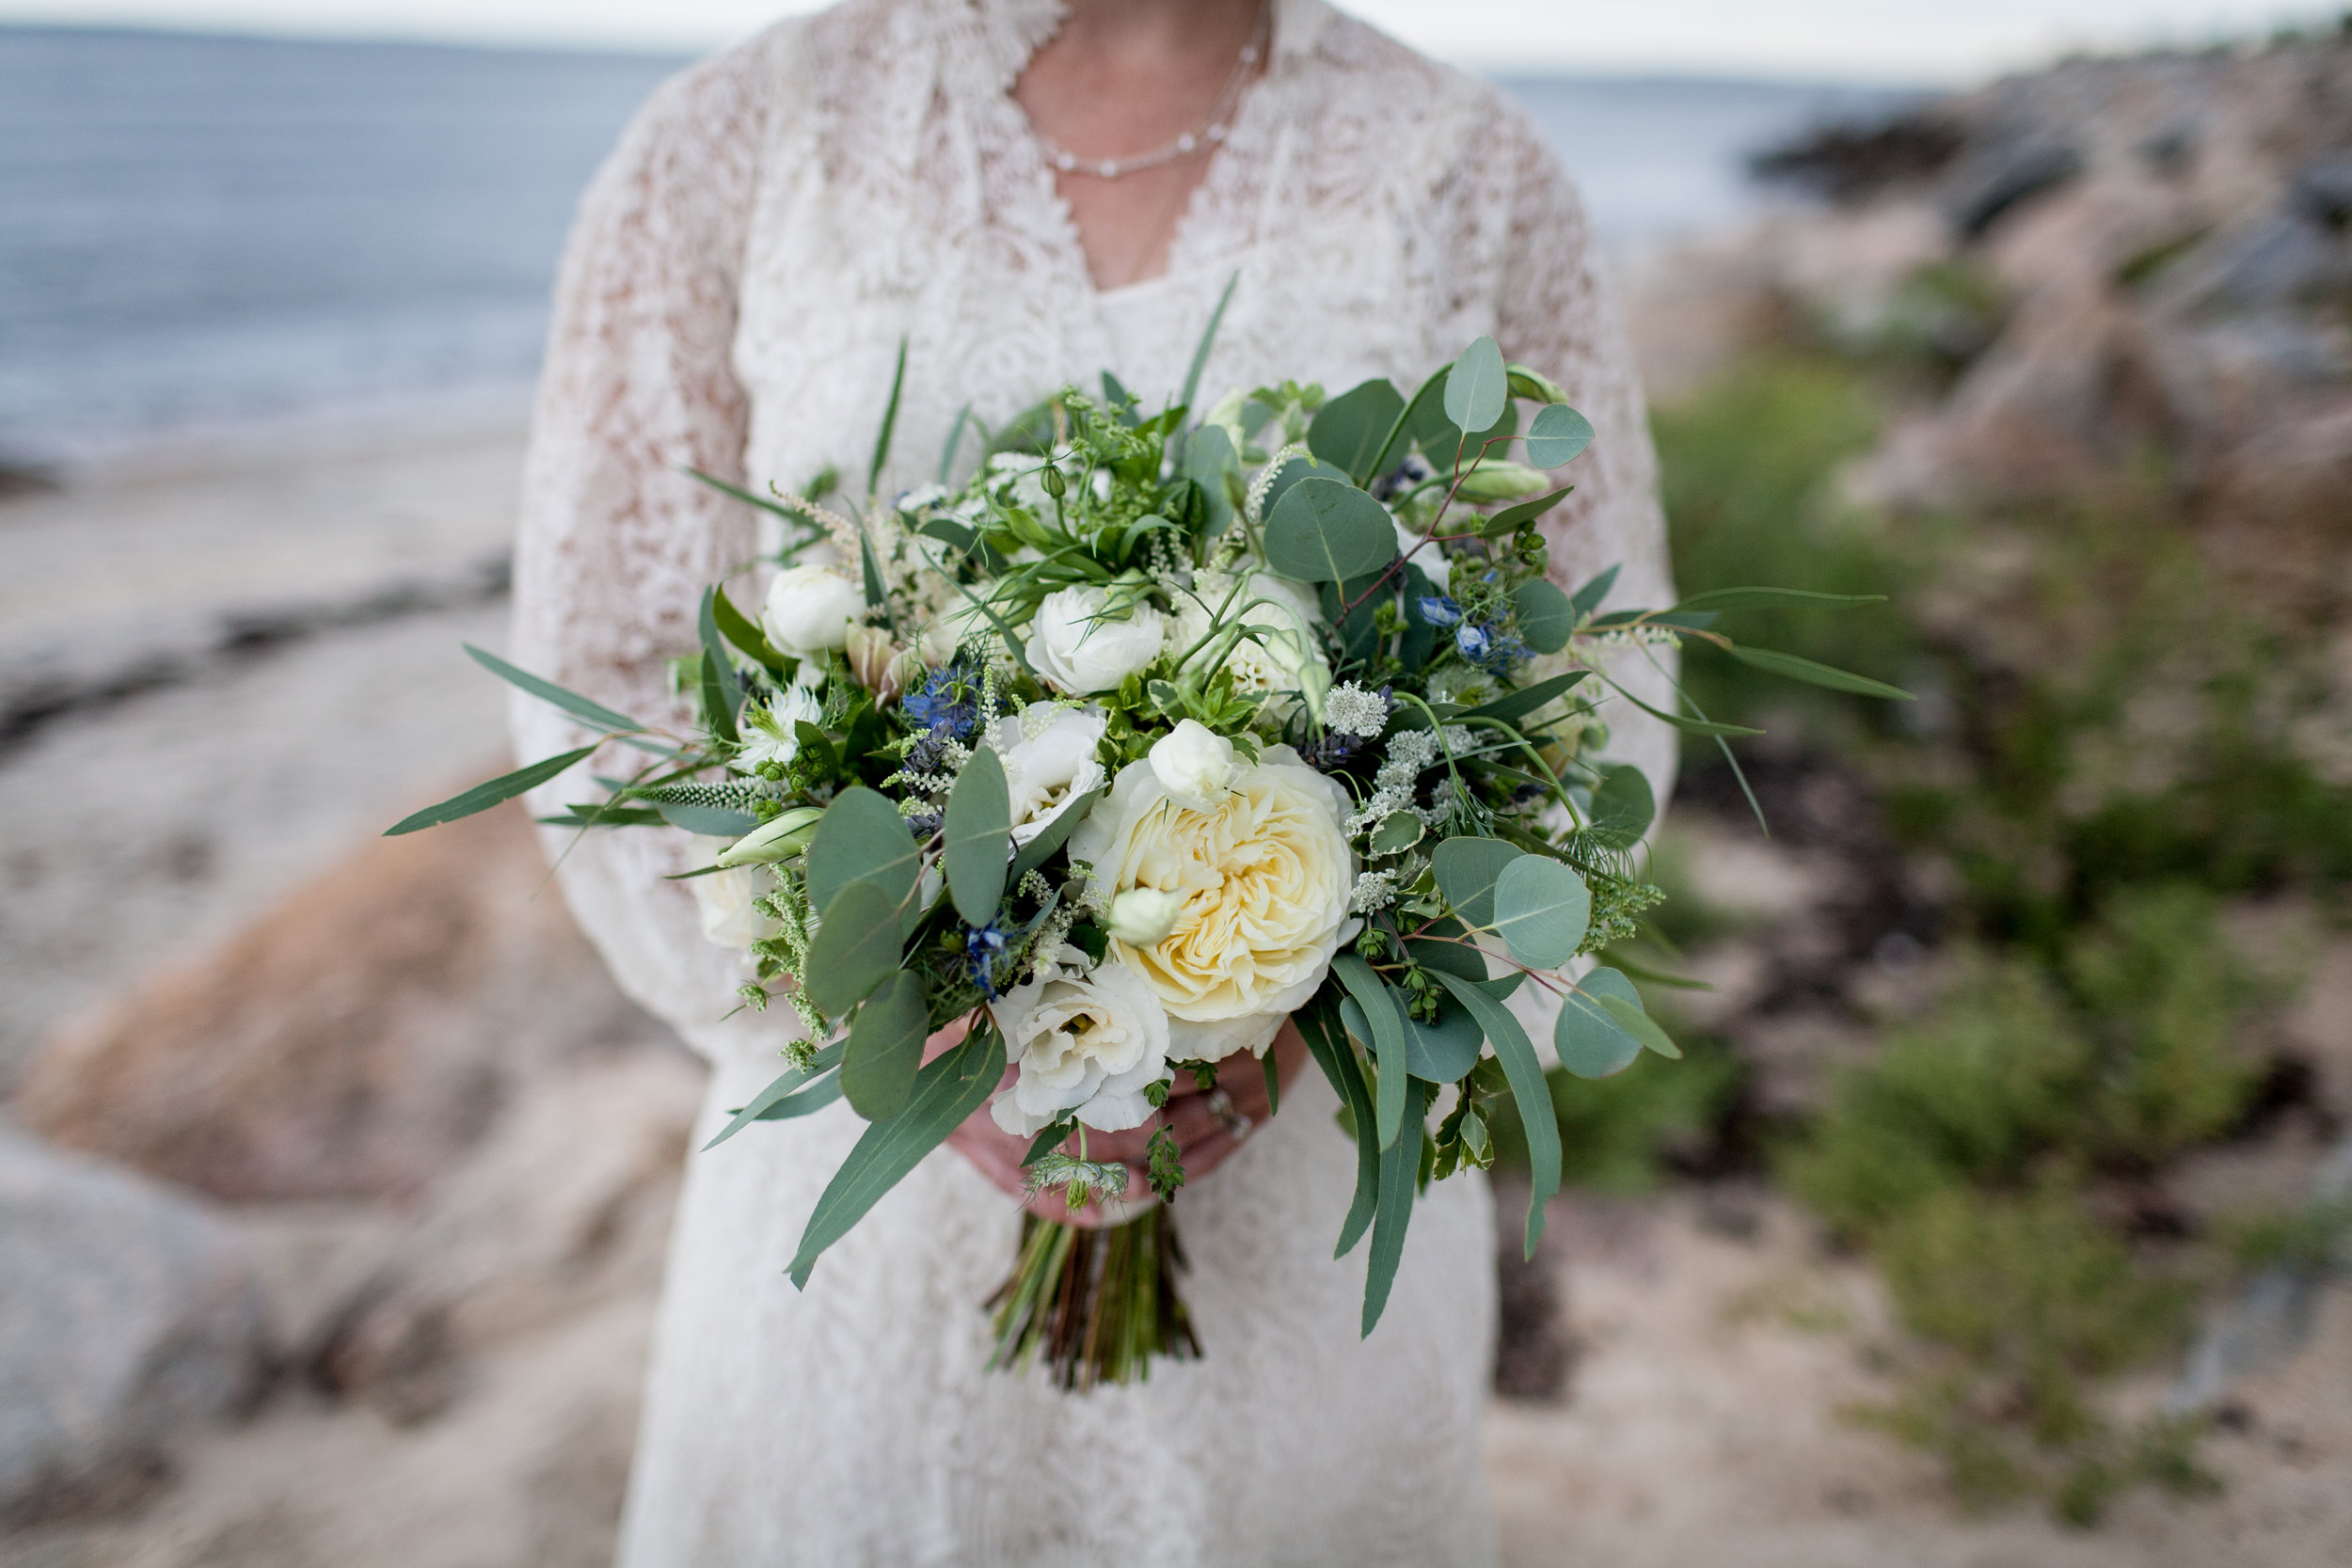 Hana Floral Design with Ashley Douglass Events, CT Wedding. Brookelyn Photography.